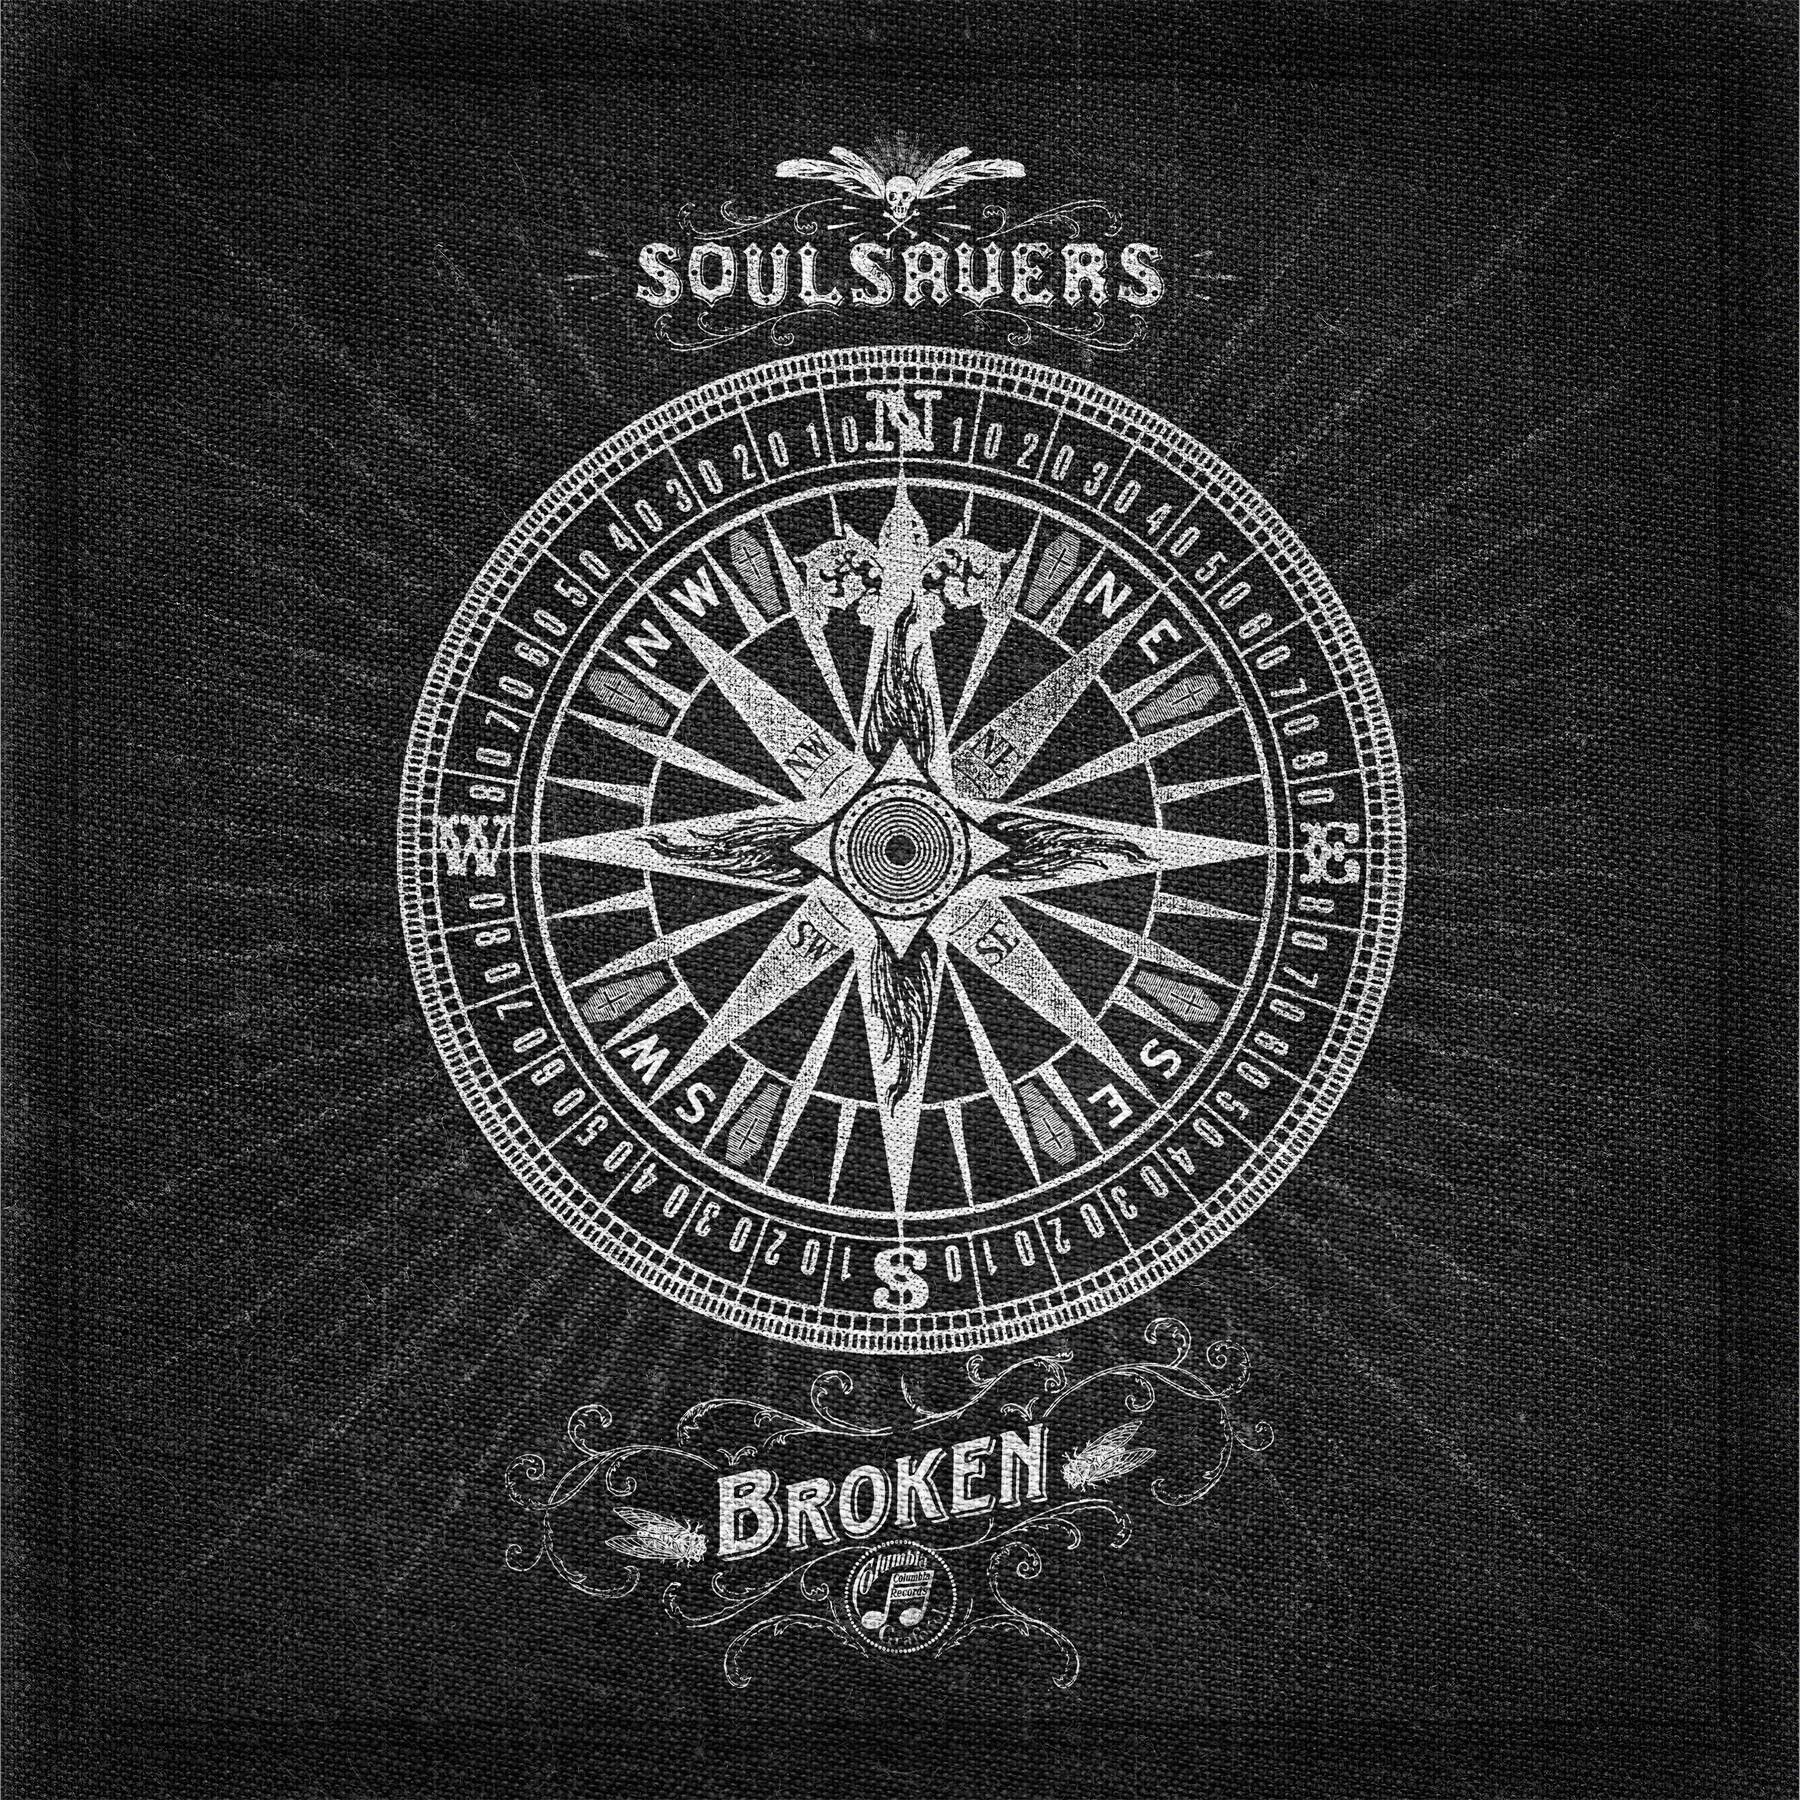 Soulsavers - Broken album cover